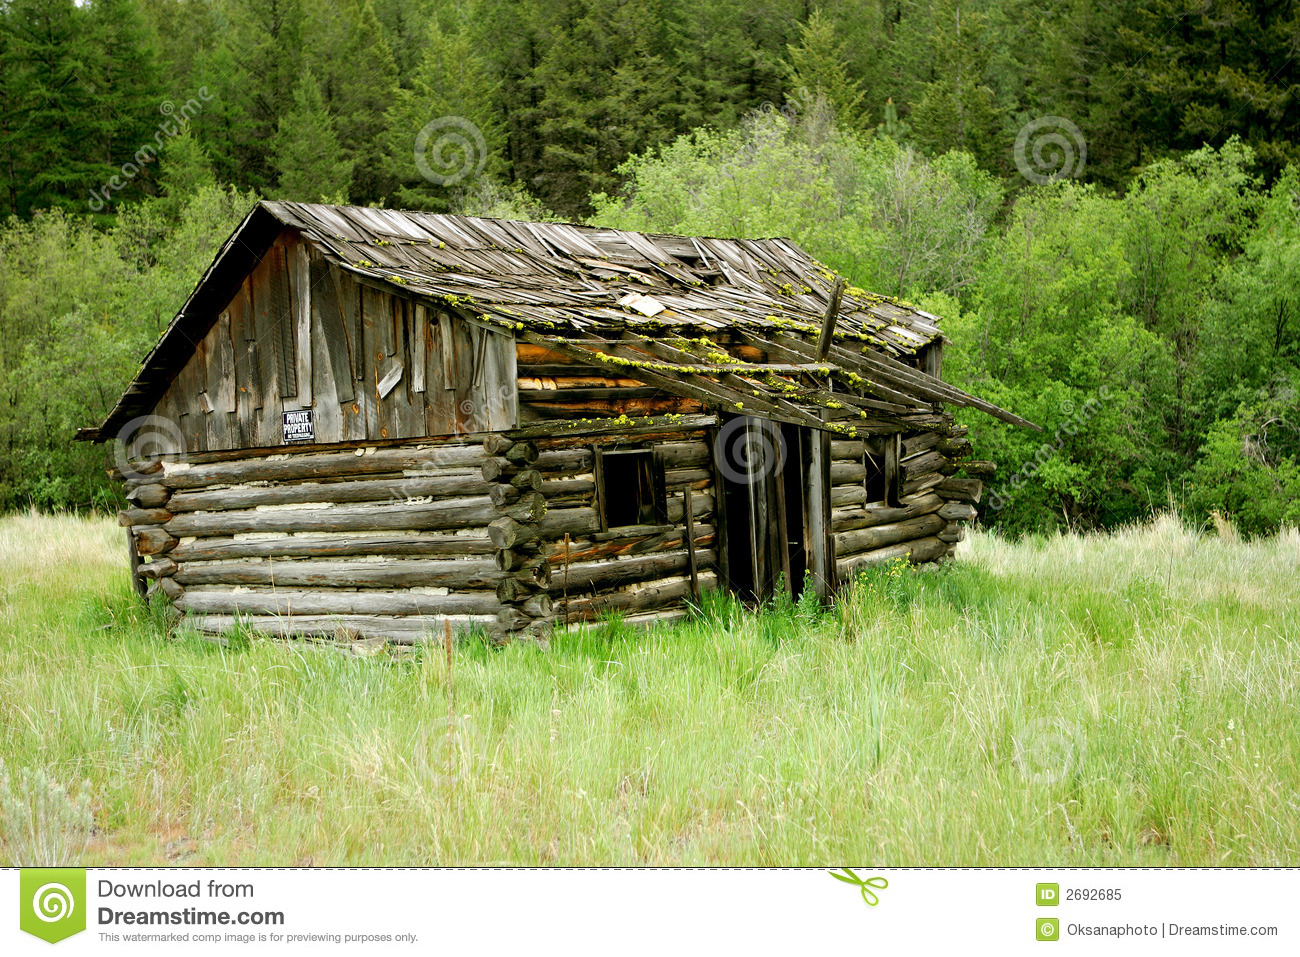 Amazing photo of Pin Creepy Log Cabin Polycount Forum on Pinterest with #49641C color and 1300x957 pixels